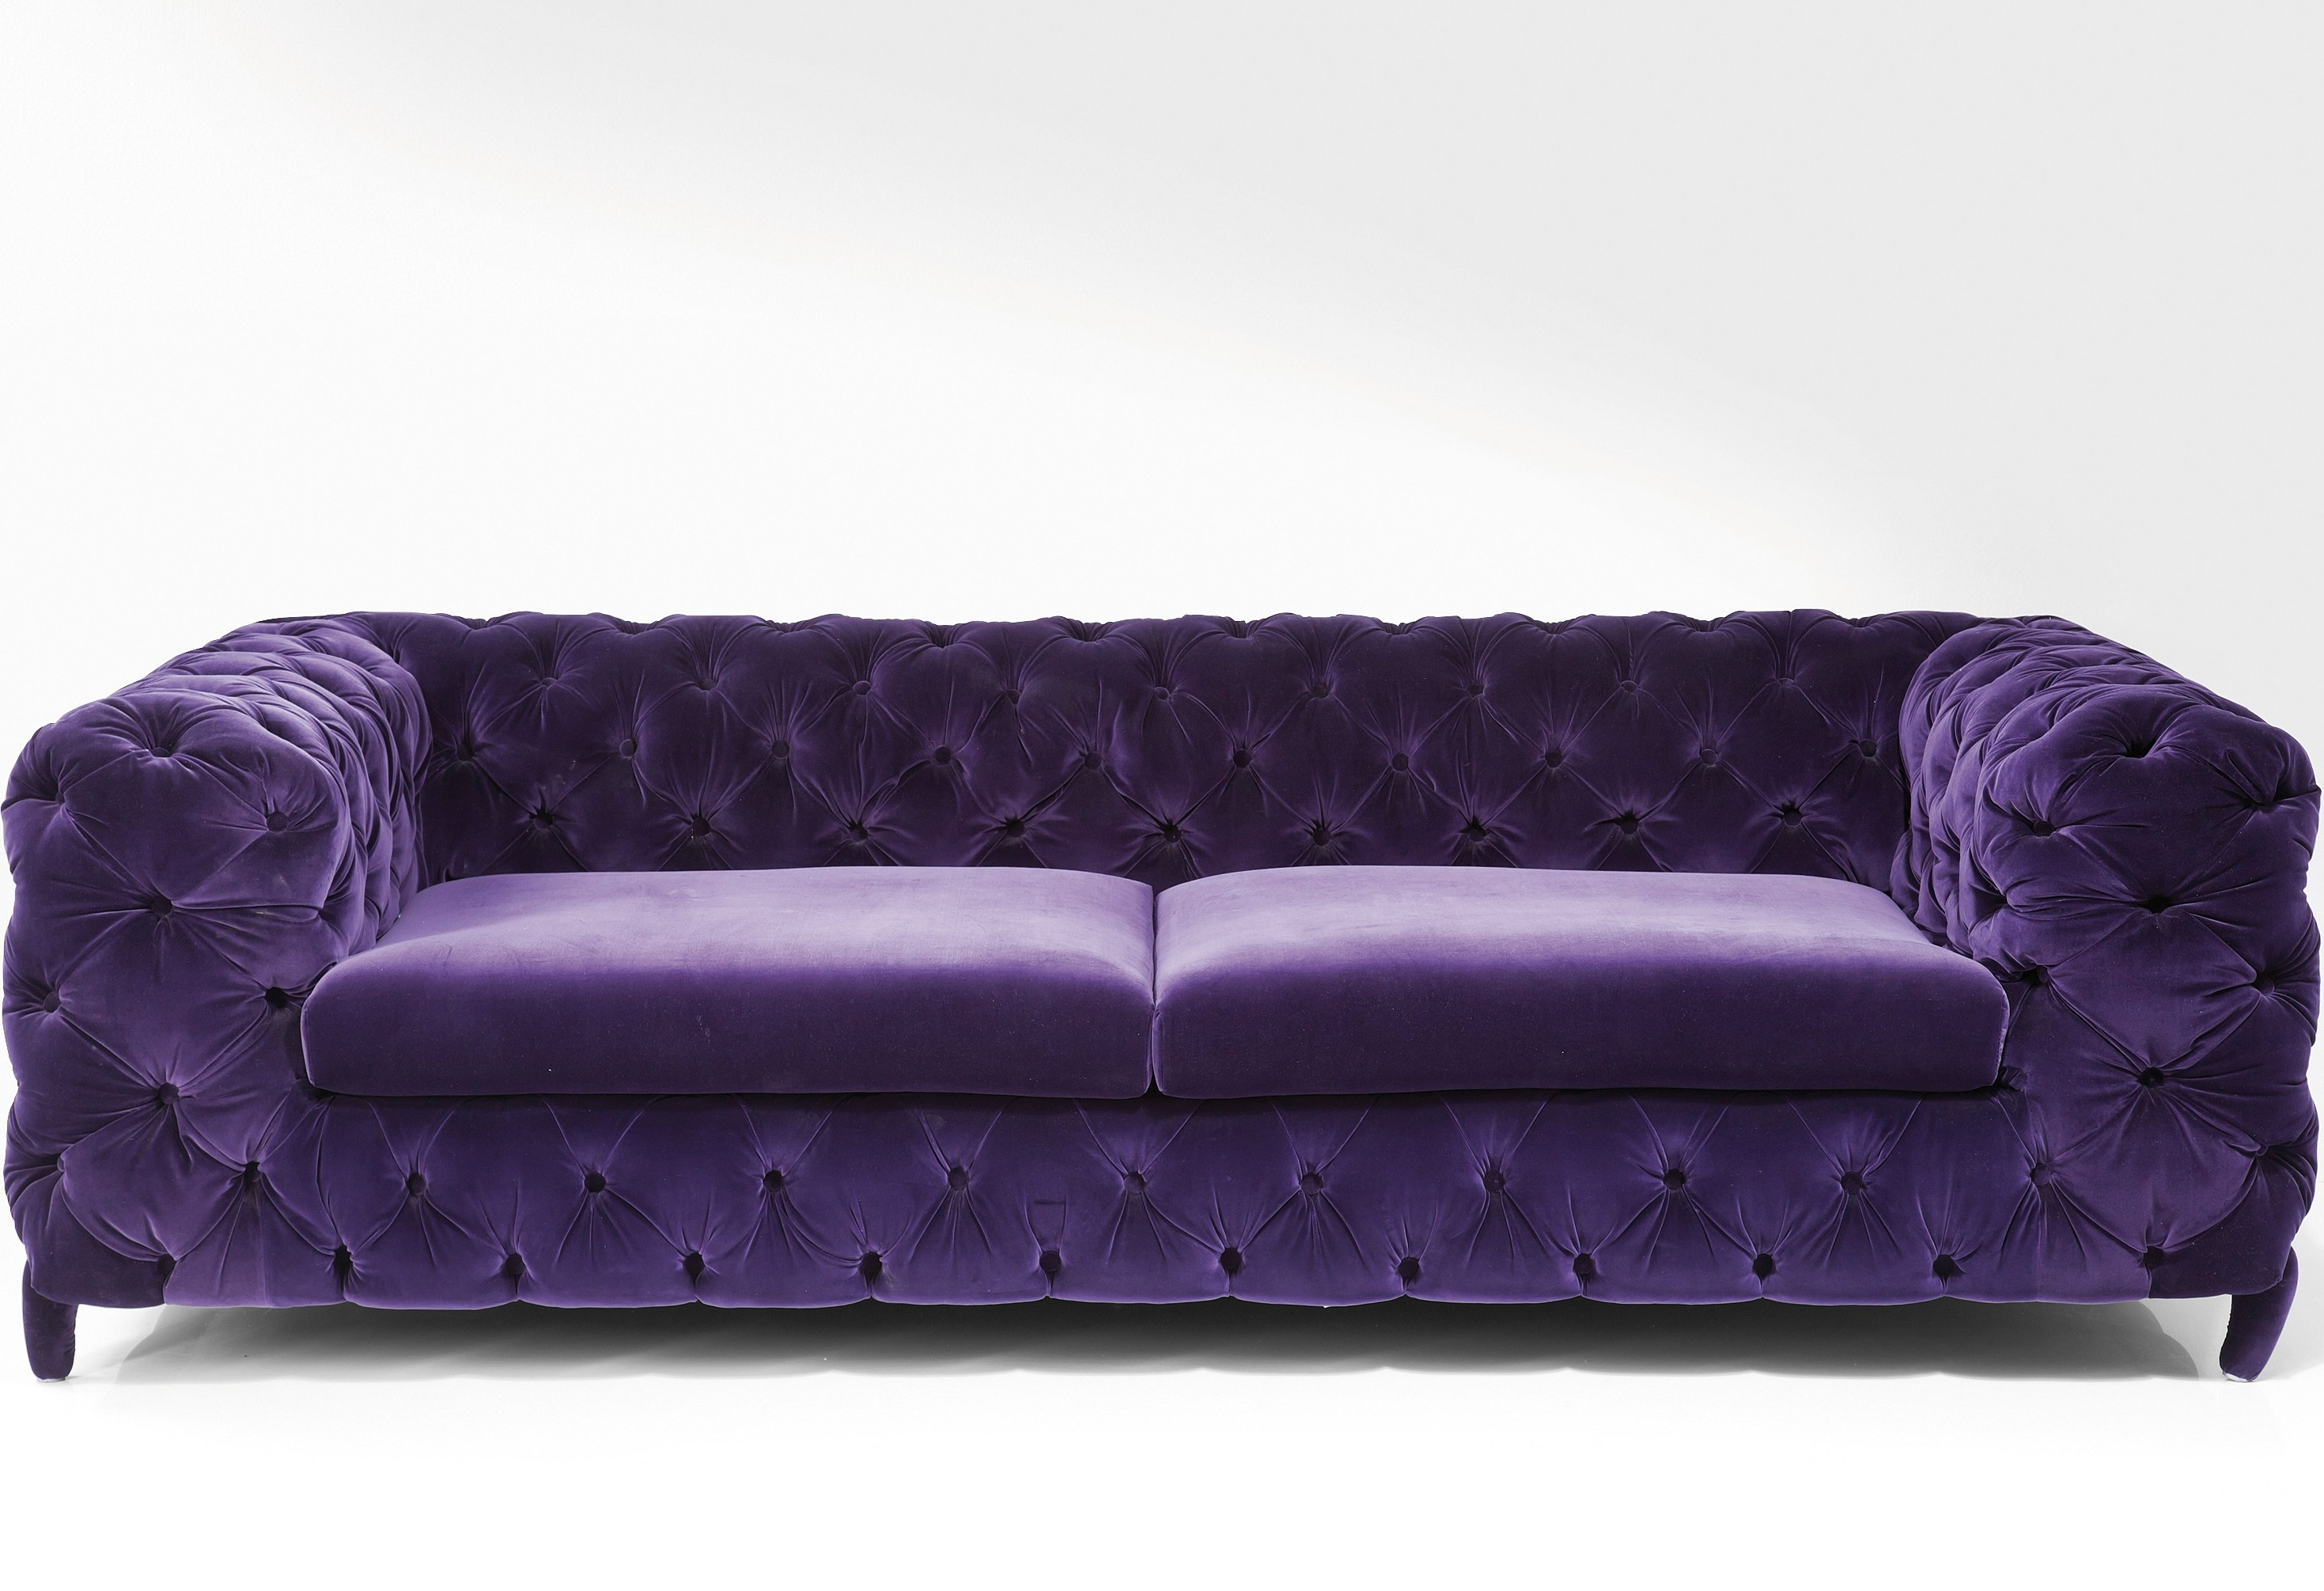 Widely Used We've Selected 20 Beautiful Velvet Sofas, In A Variety Of Modern Throughout Velvet Sofas (View 15 of 15)